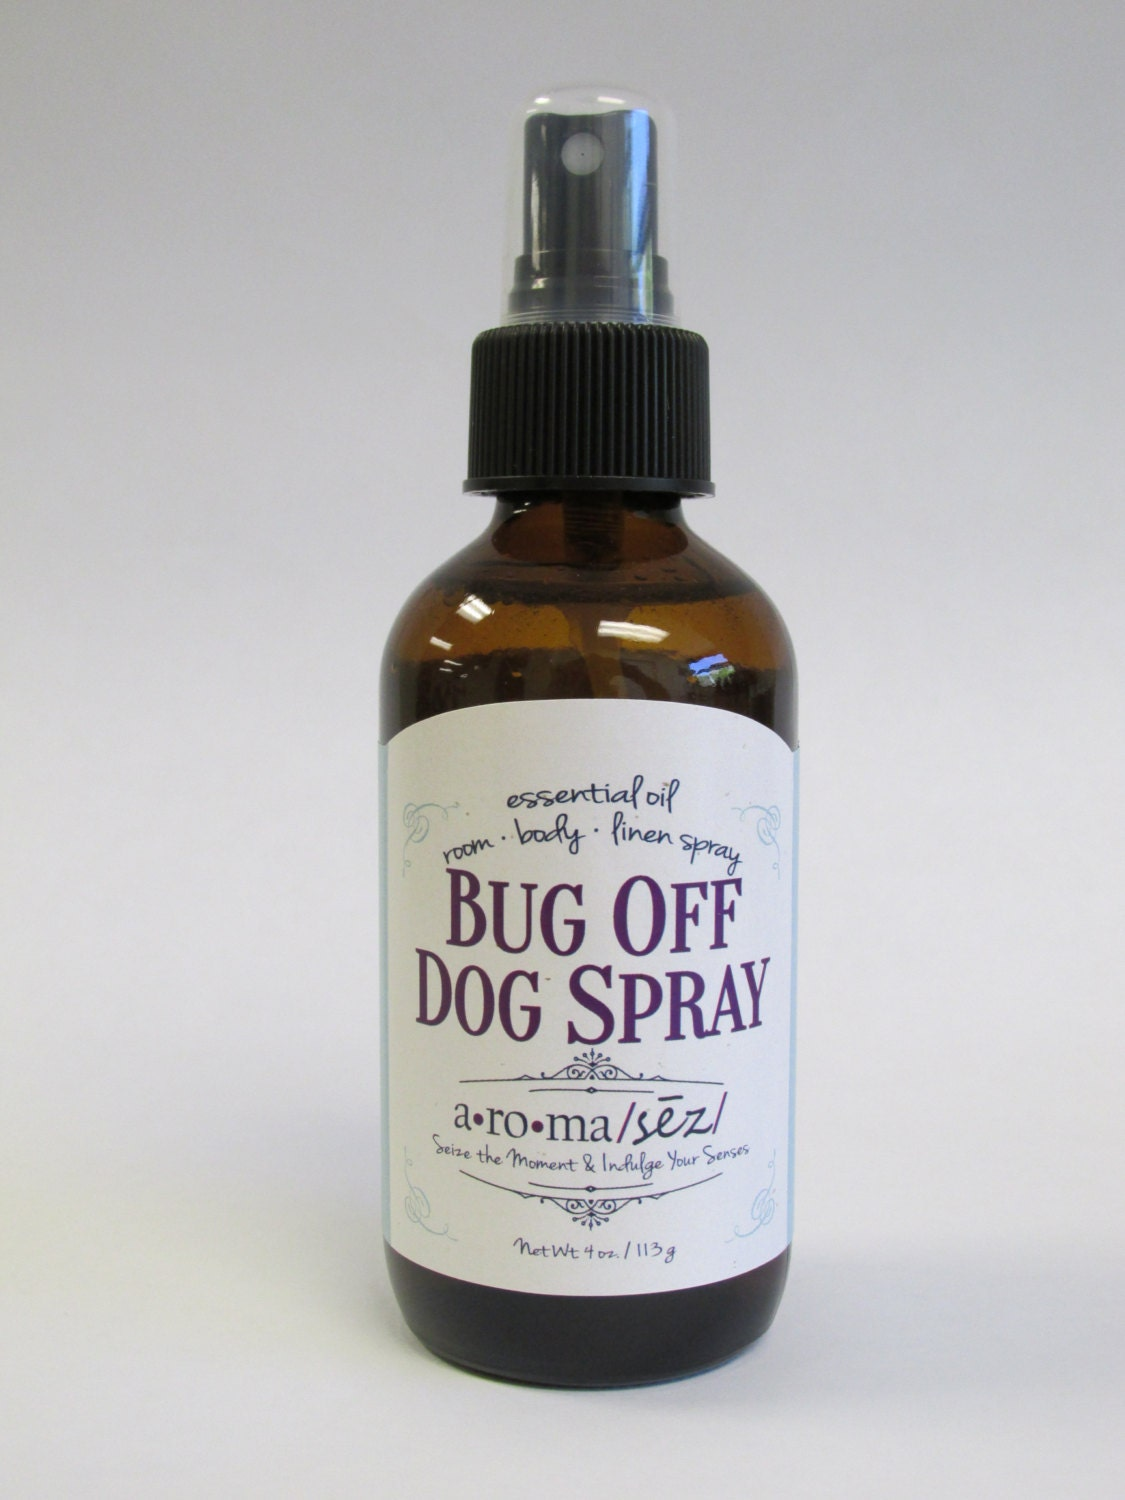 Does Dog Spray Work On Humans